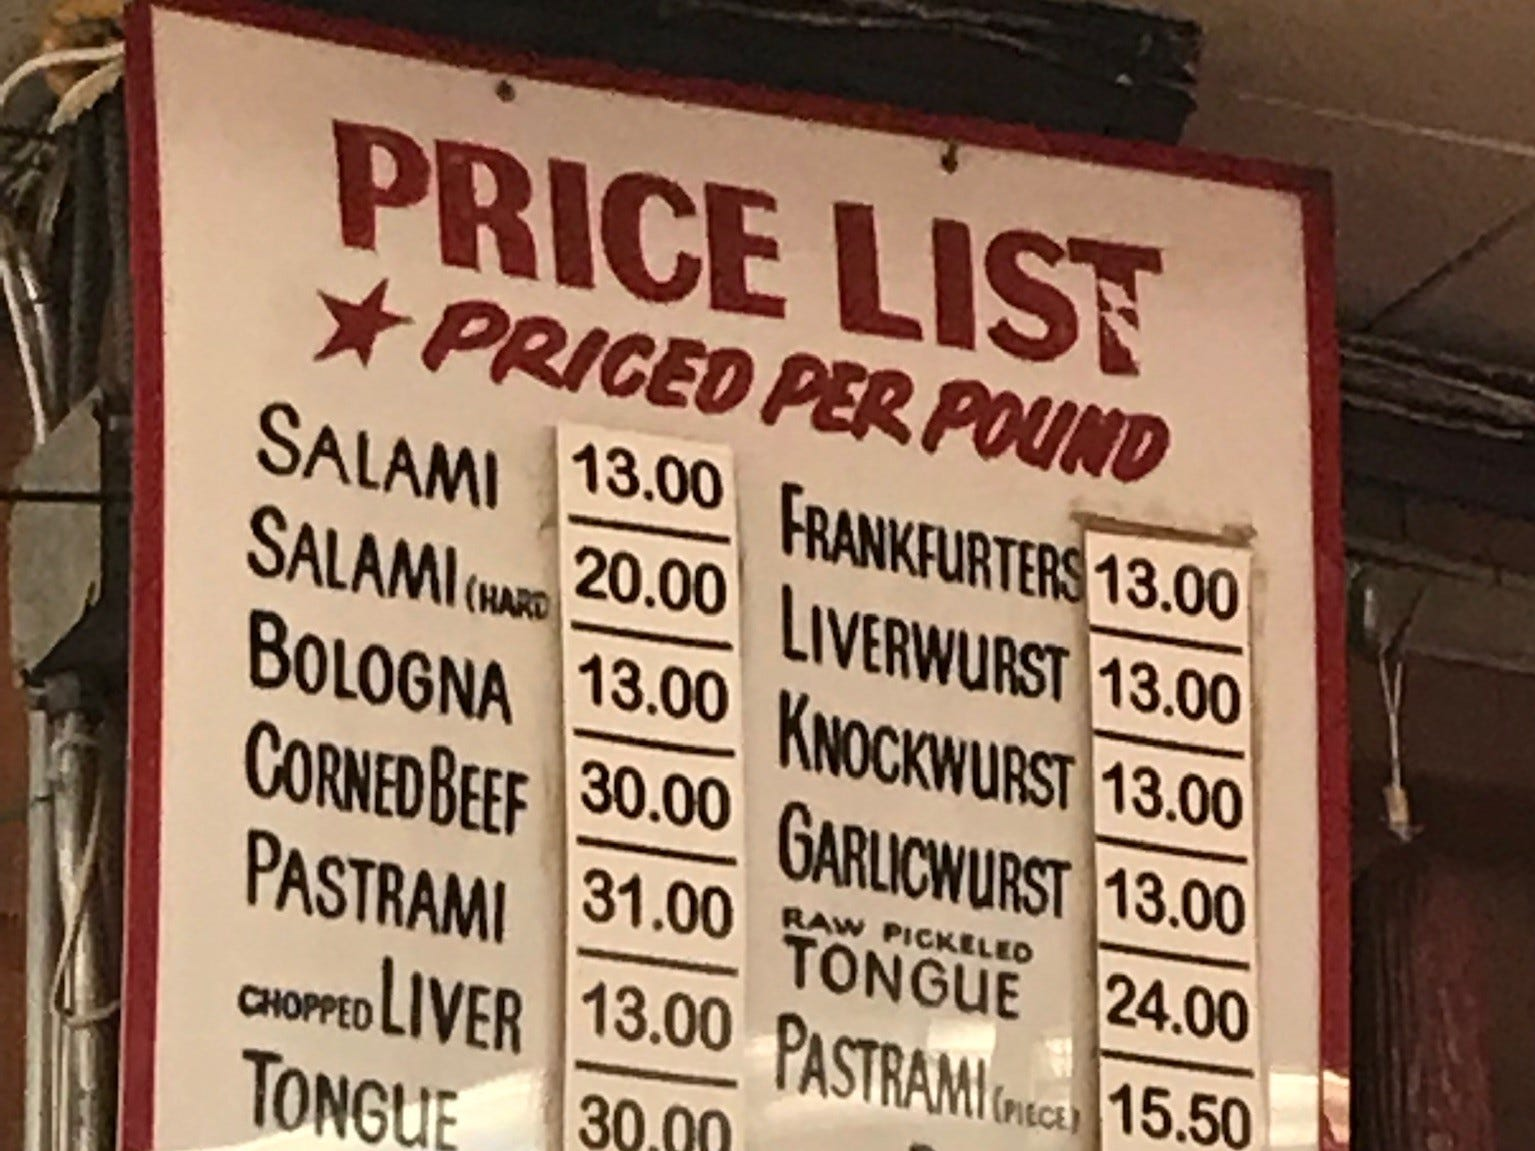 Katz's Deli is best known for its pastrami sandwiches, but also sells a full array of traditional Jewish deli meats and appetizing items to go.